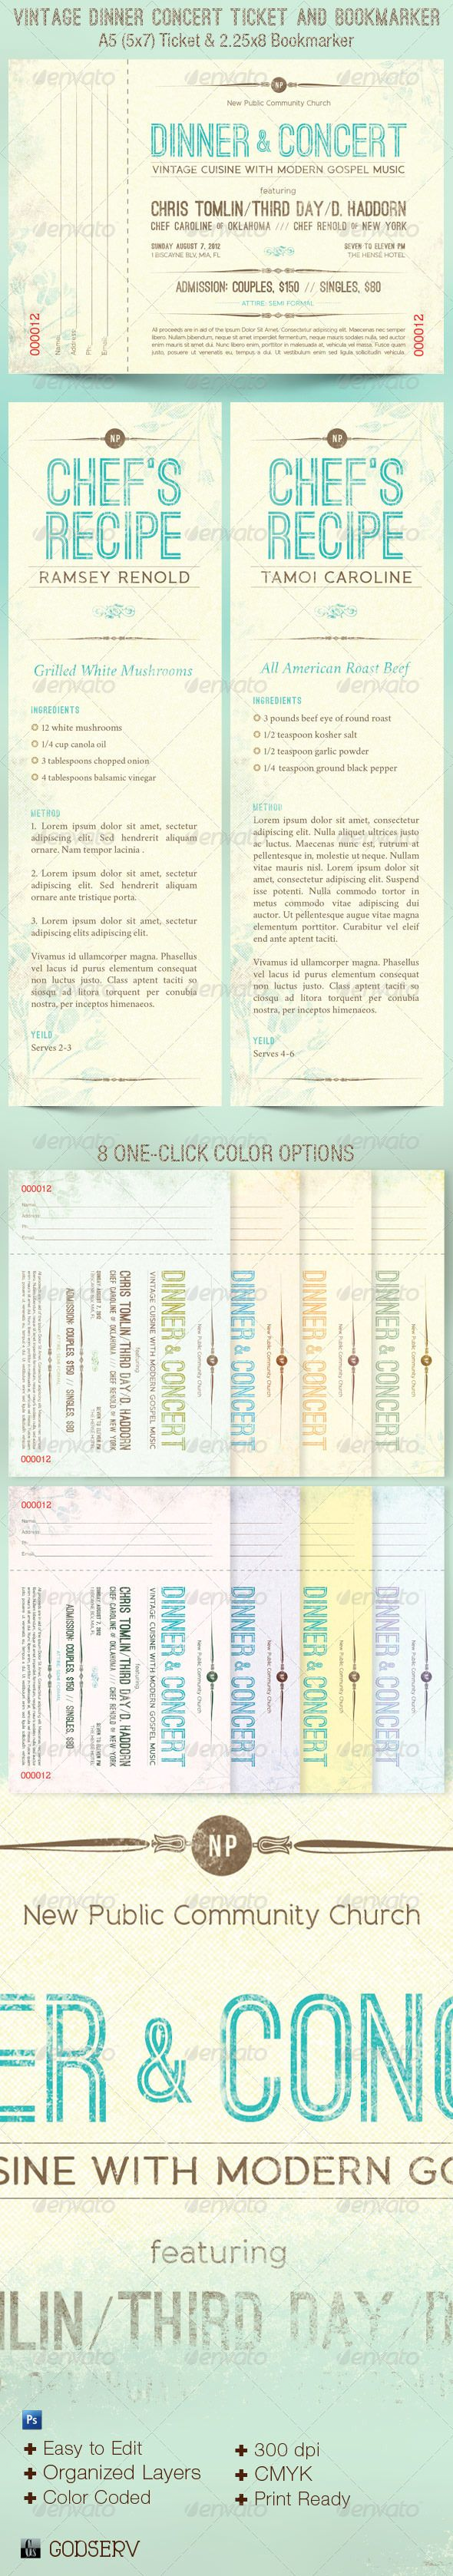 Concert Ticket Template Free Download Gorgeous Vintage Dinner Concert Ticket Bookmarker  Celebration Church .